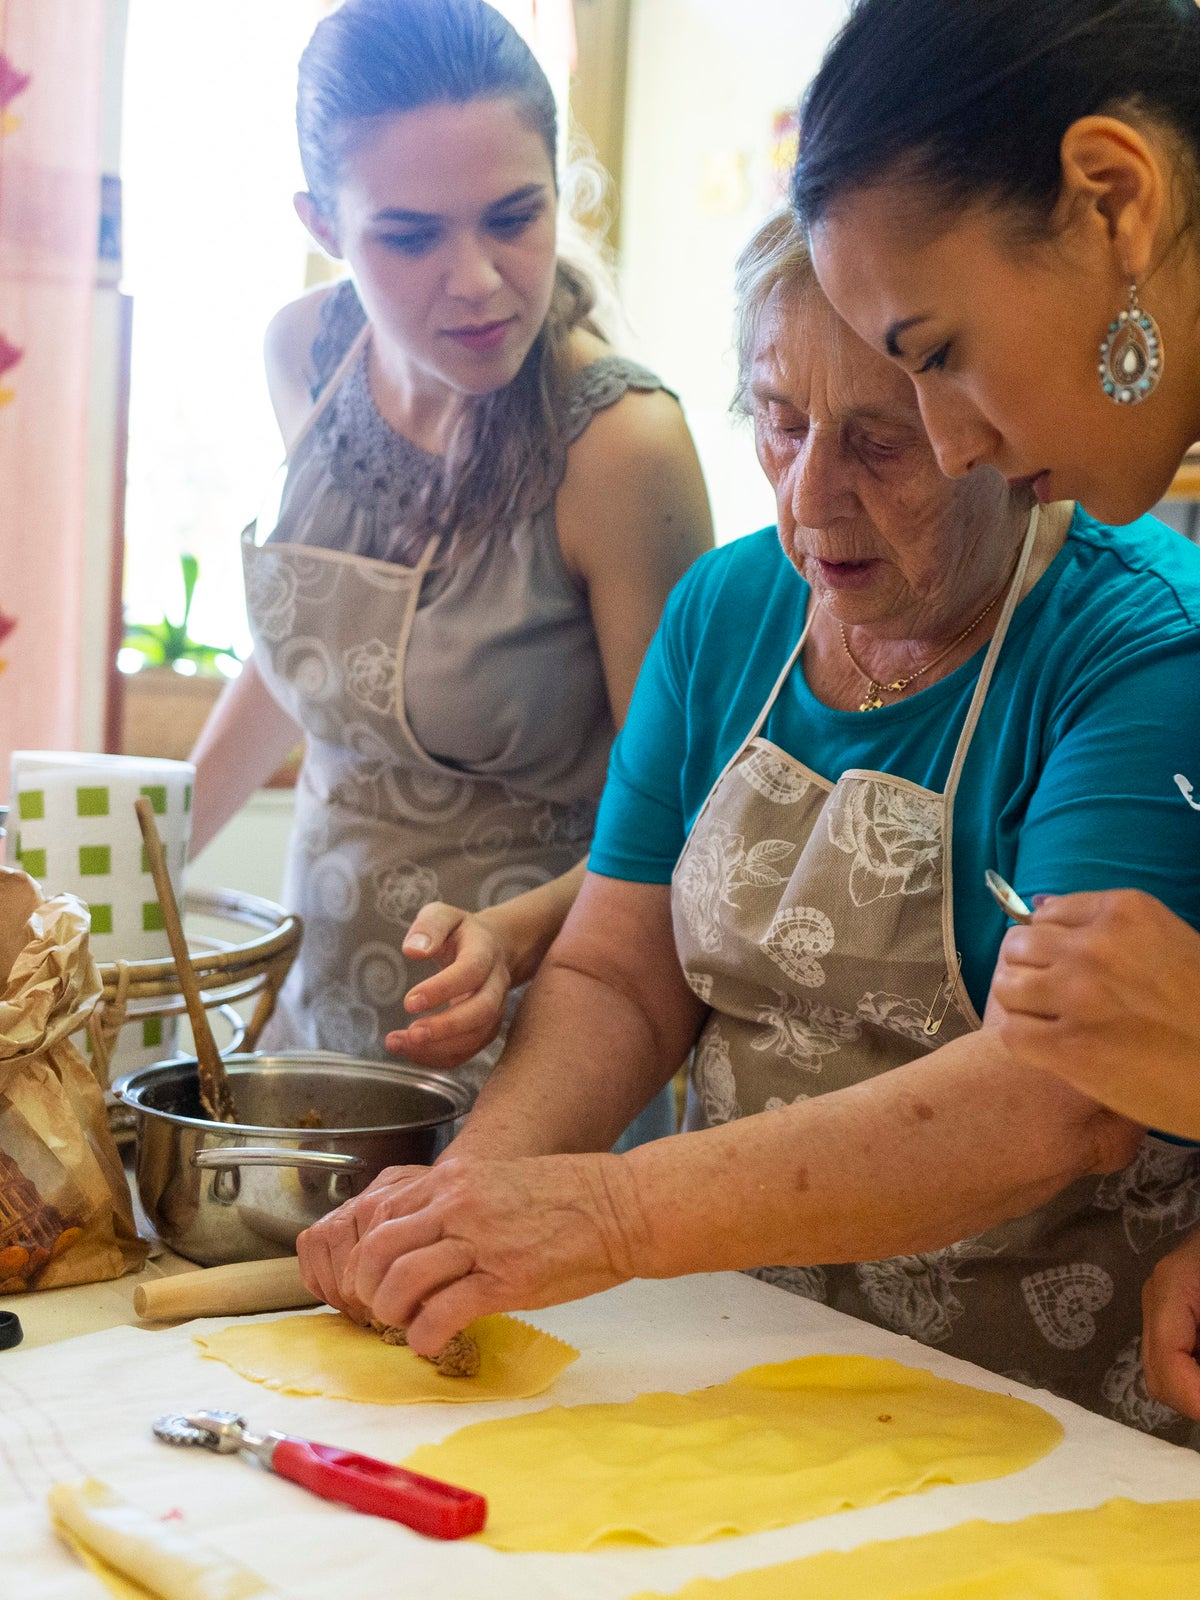 grandma teaching people to make pasta